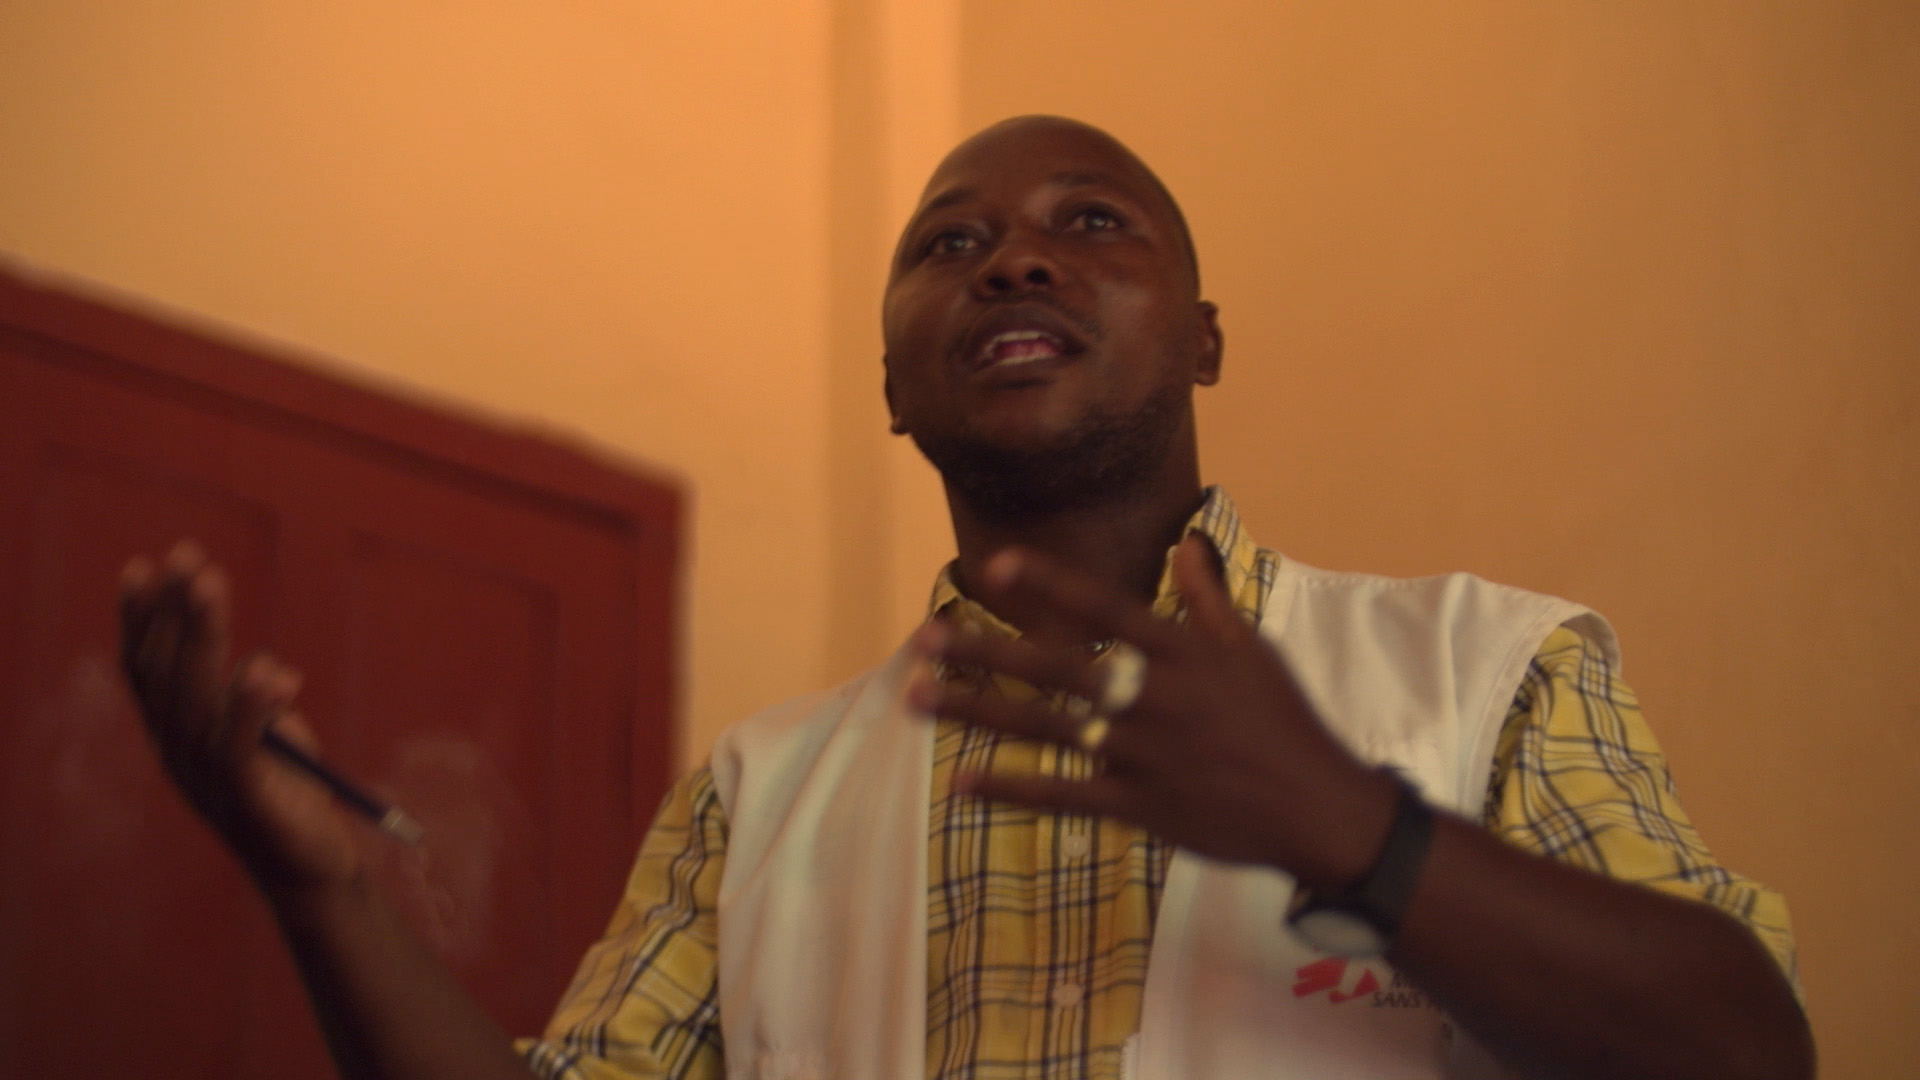 Doctors Without Borders' Claude Bitalona speaks to a group of HIV-positive patients at the Zemio hospital in the Central African Republic. (Z. Baddorf/VOA)